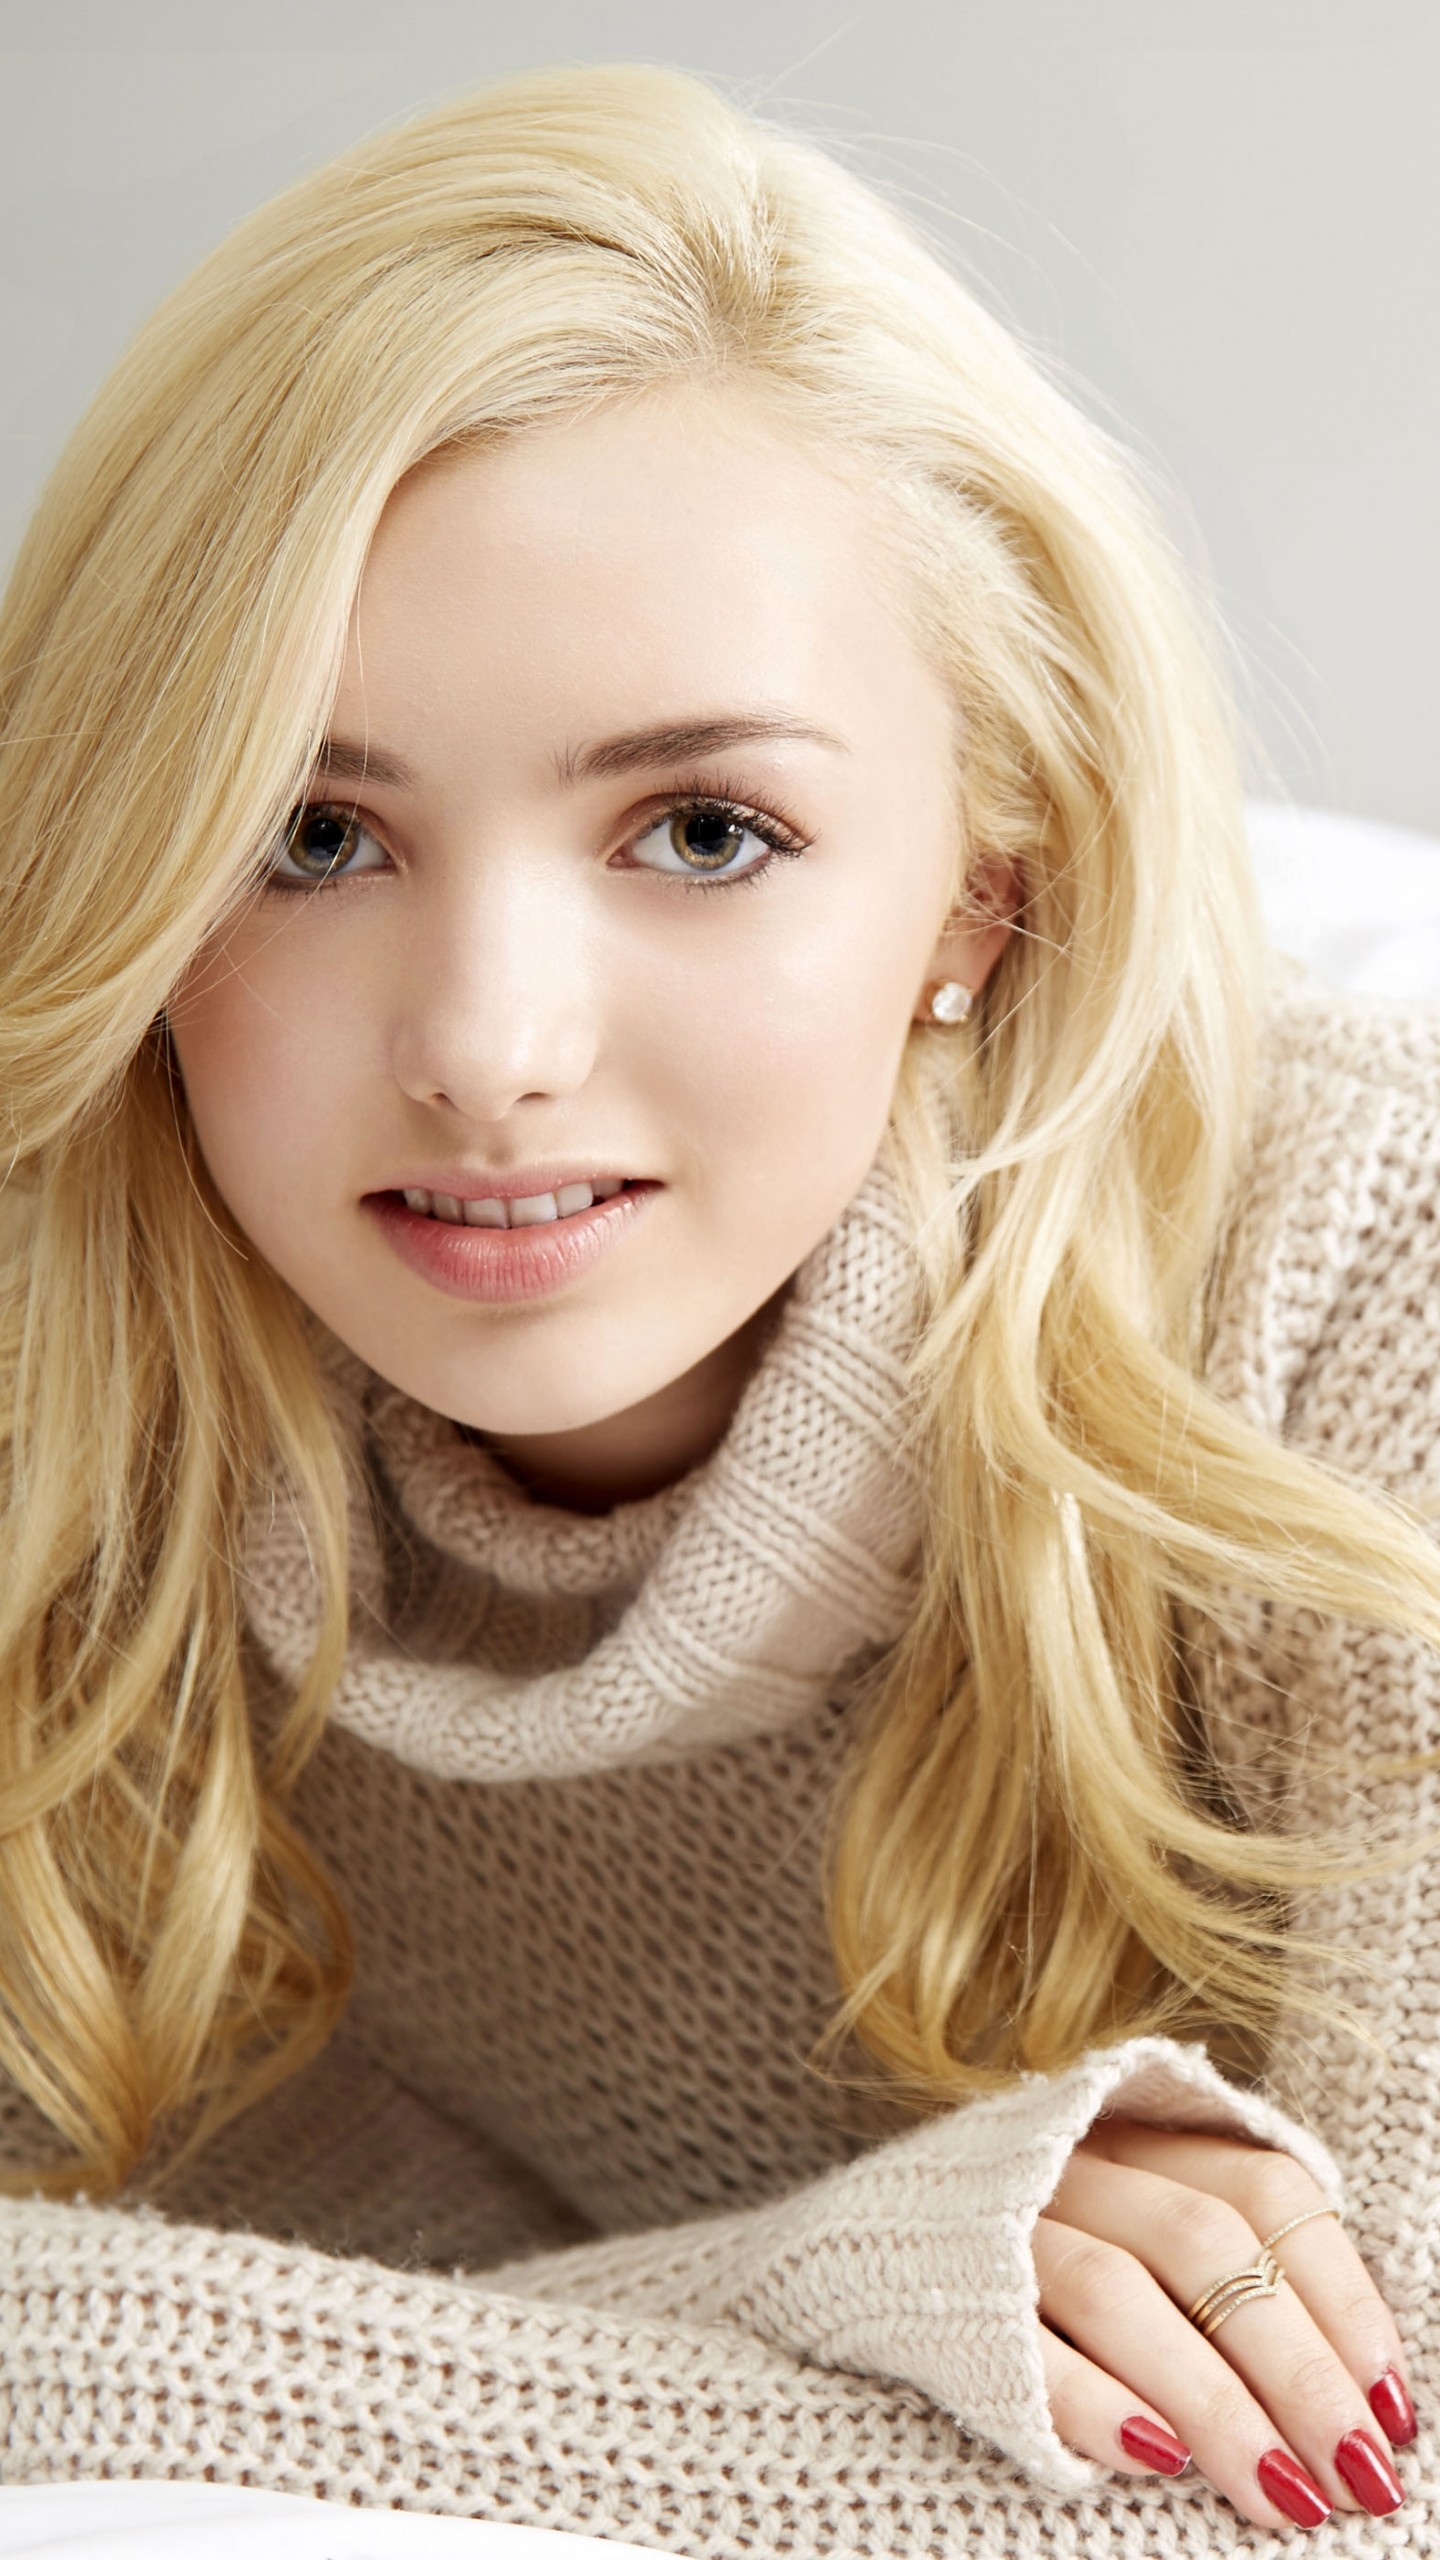 Most Popular Teen Girl Hairstyles: Wallpaper Peyton Roi List, Most Popular Celebs, Actress